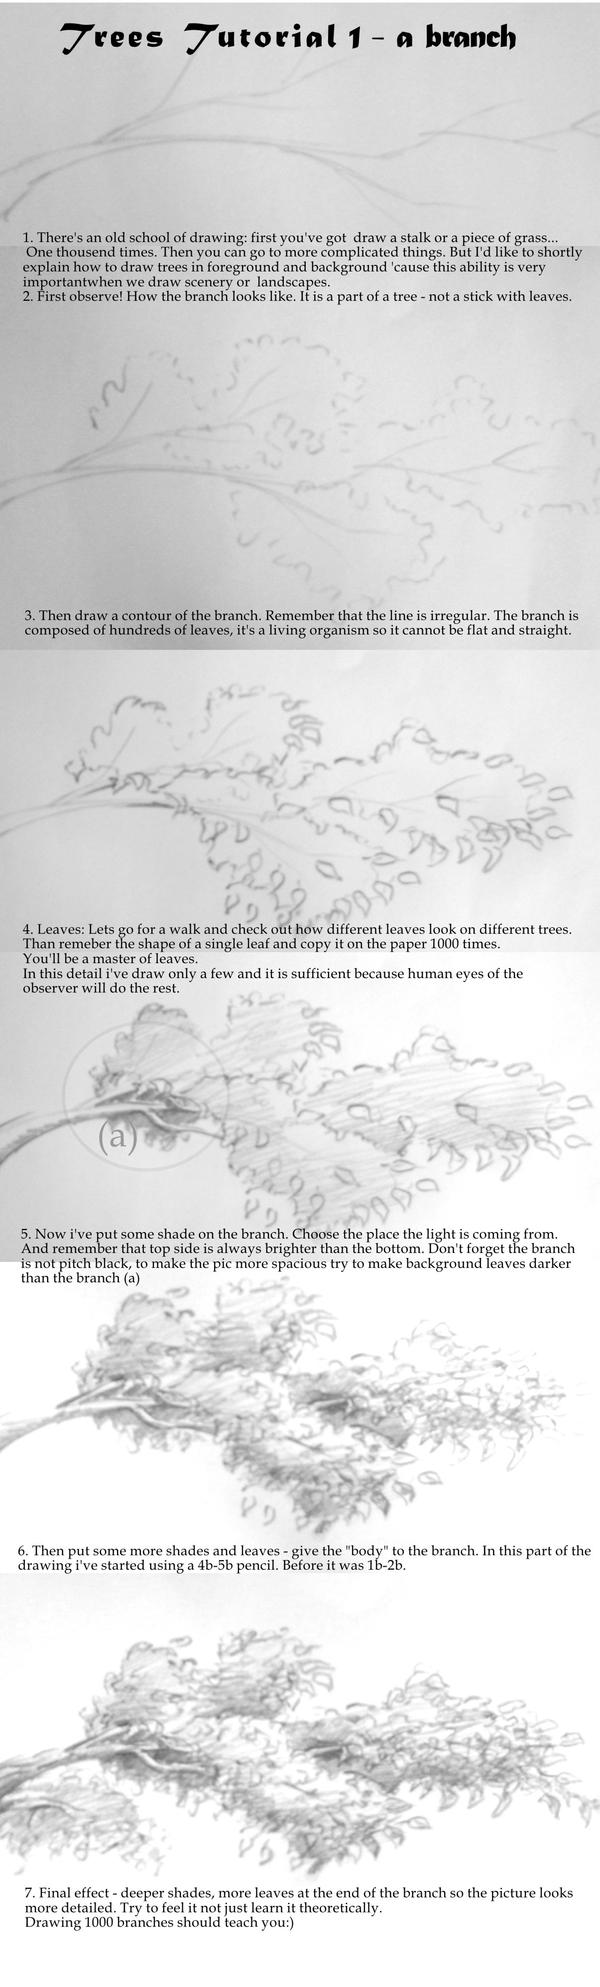 Tree tutorial 1 - a branch by yezoos